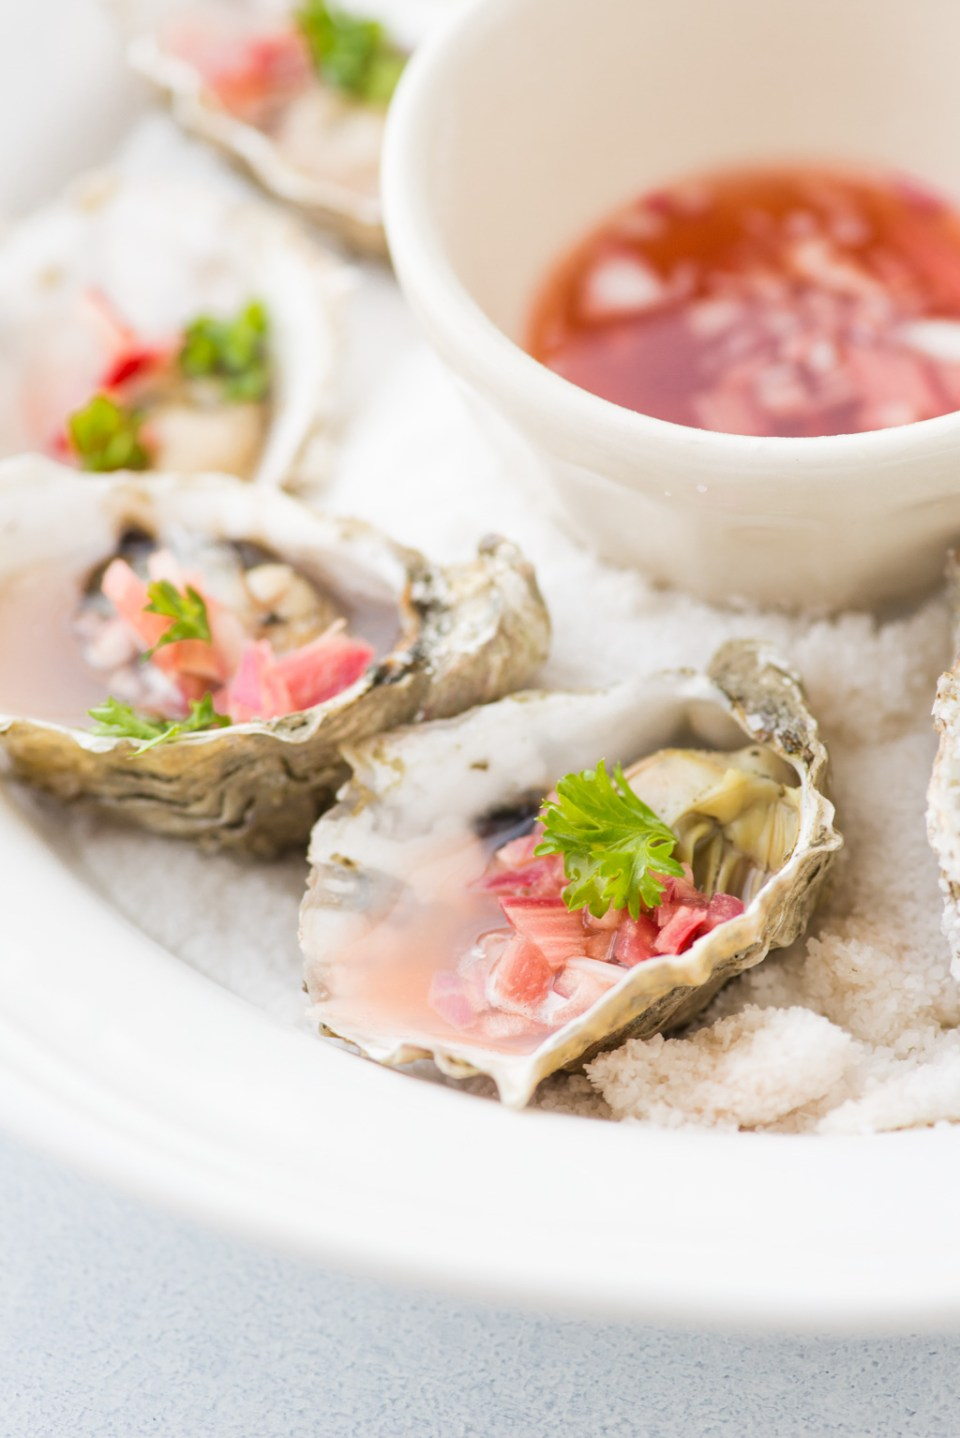 Roasted Oysters with Rhubarb Mignonette - a Nordic-Inspired Recipe from Outside Oslo, a Scandinavian Food Blog